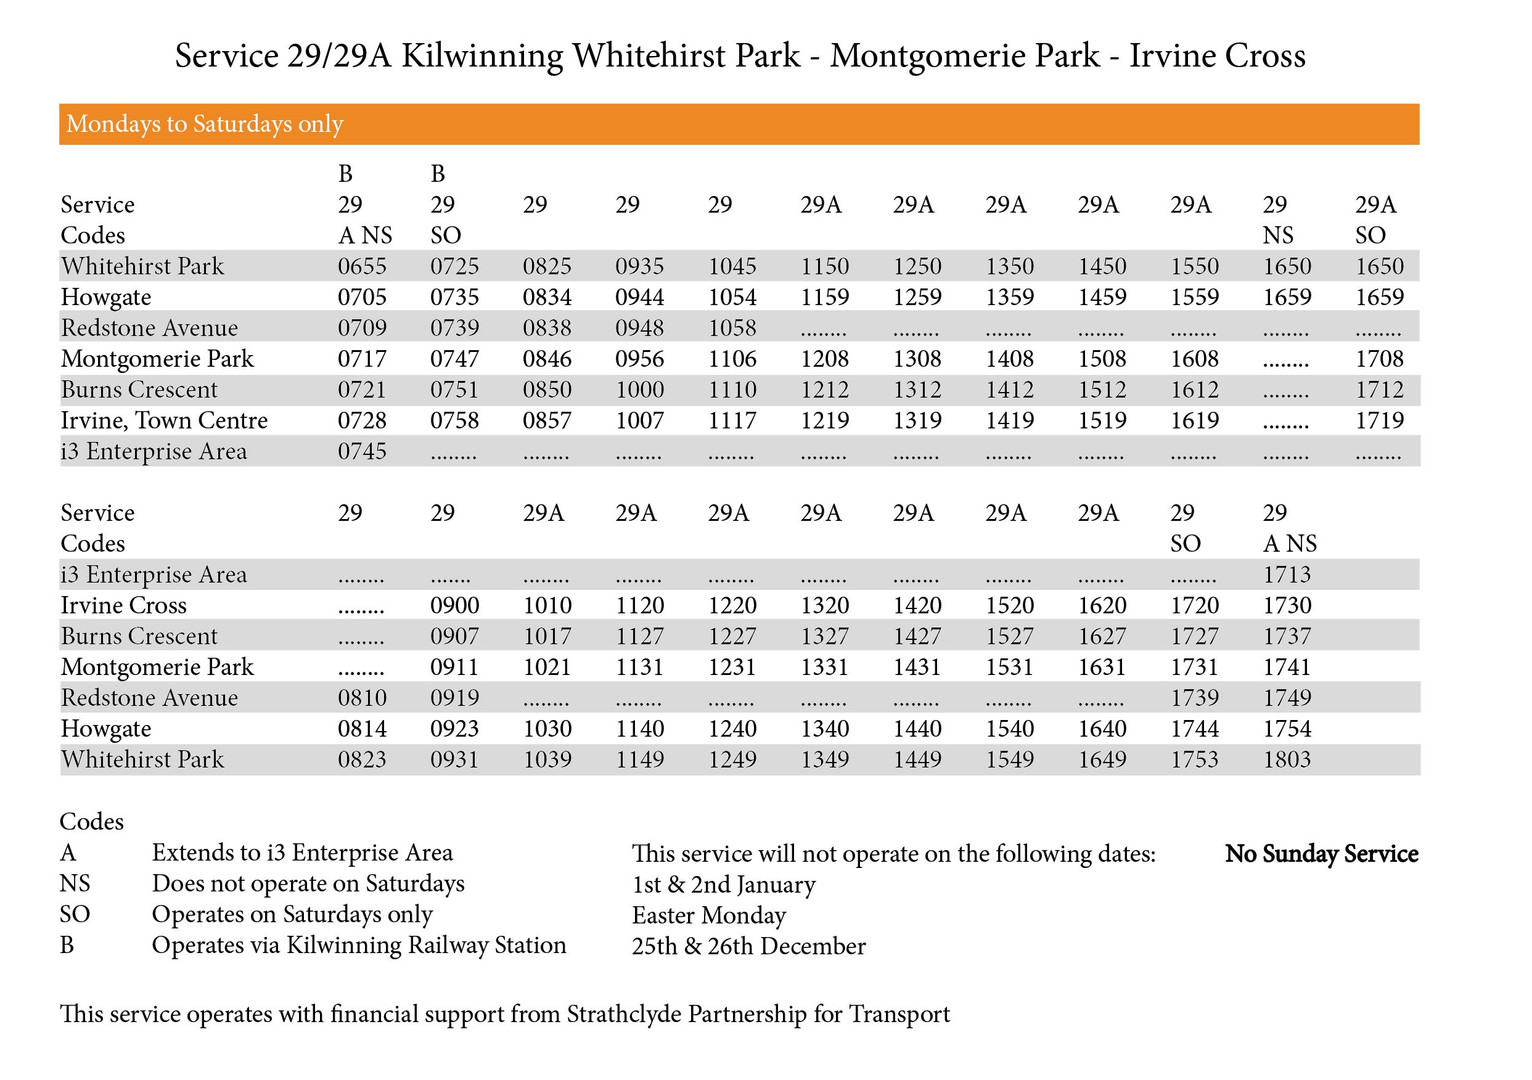 29/29A Timetable